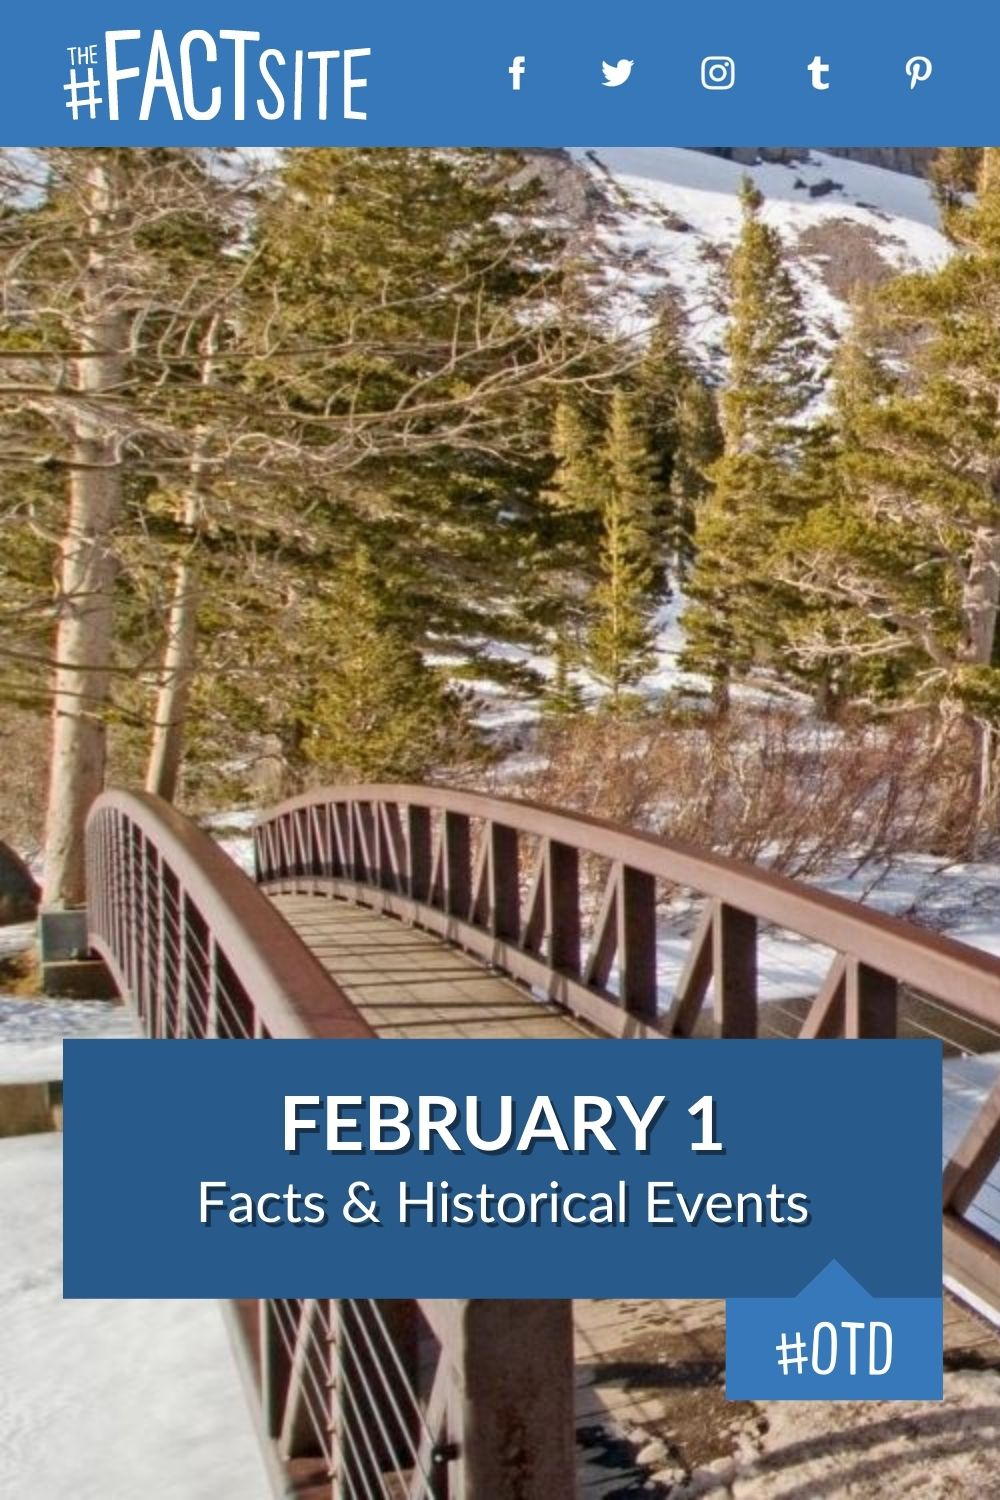 Facts & Historic Events That Happened on February 1